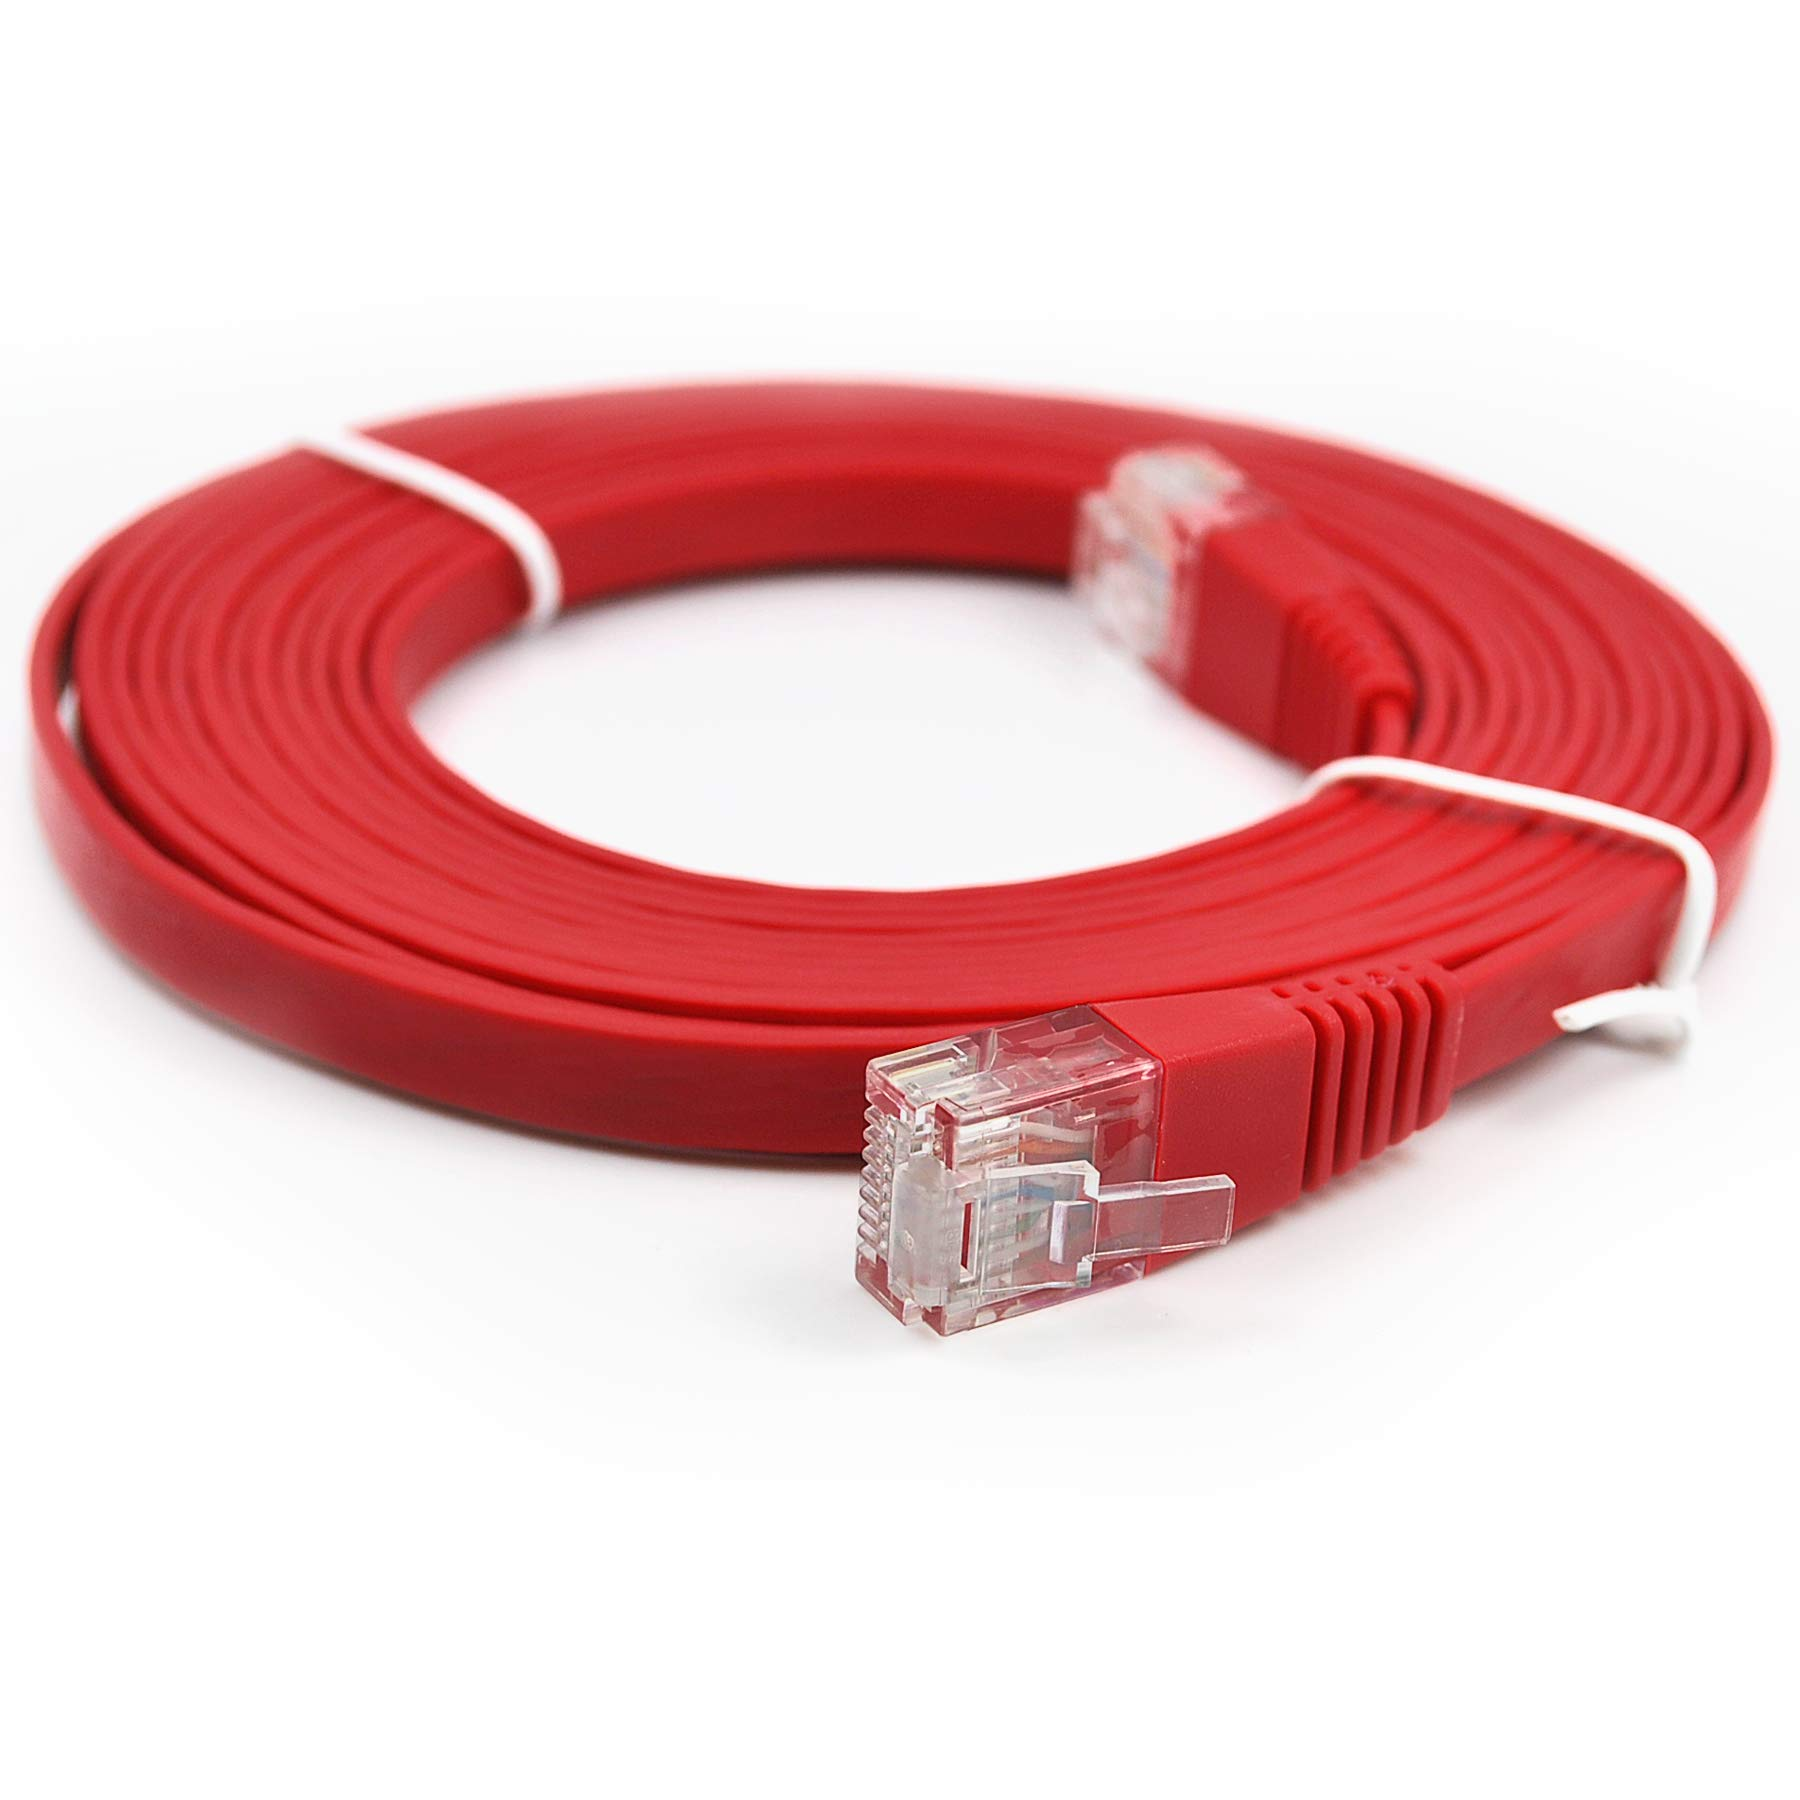 Piertelecom-Ethernet Patch Cable CAT6 LAN Flat Network Cable High Speed (10ft/red/5pack) by Pier Telecom